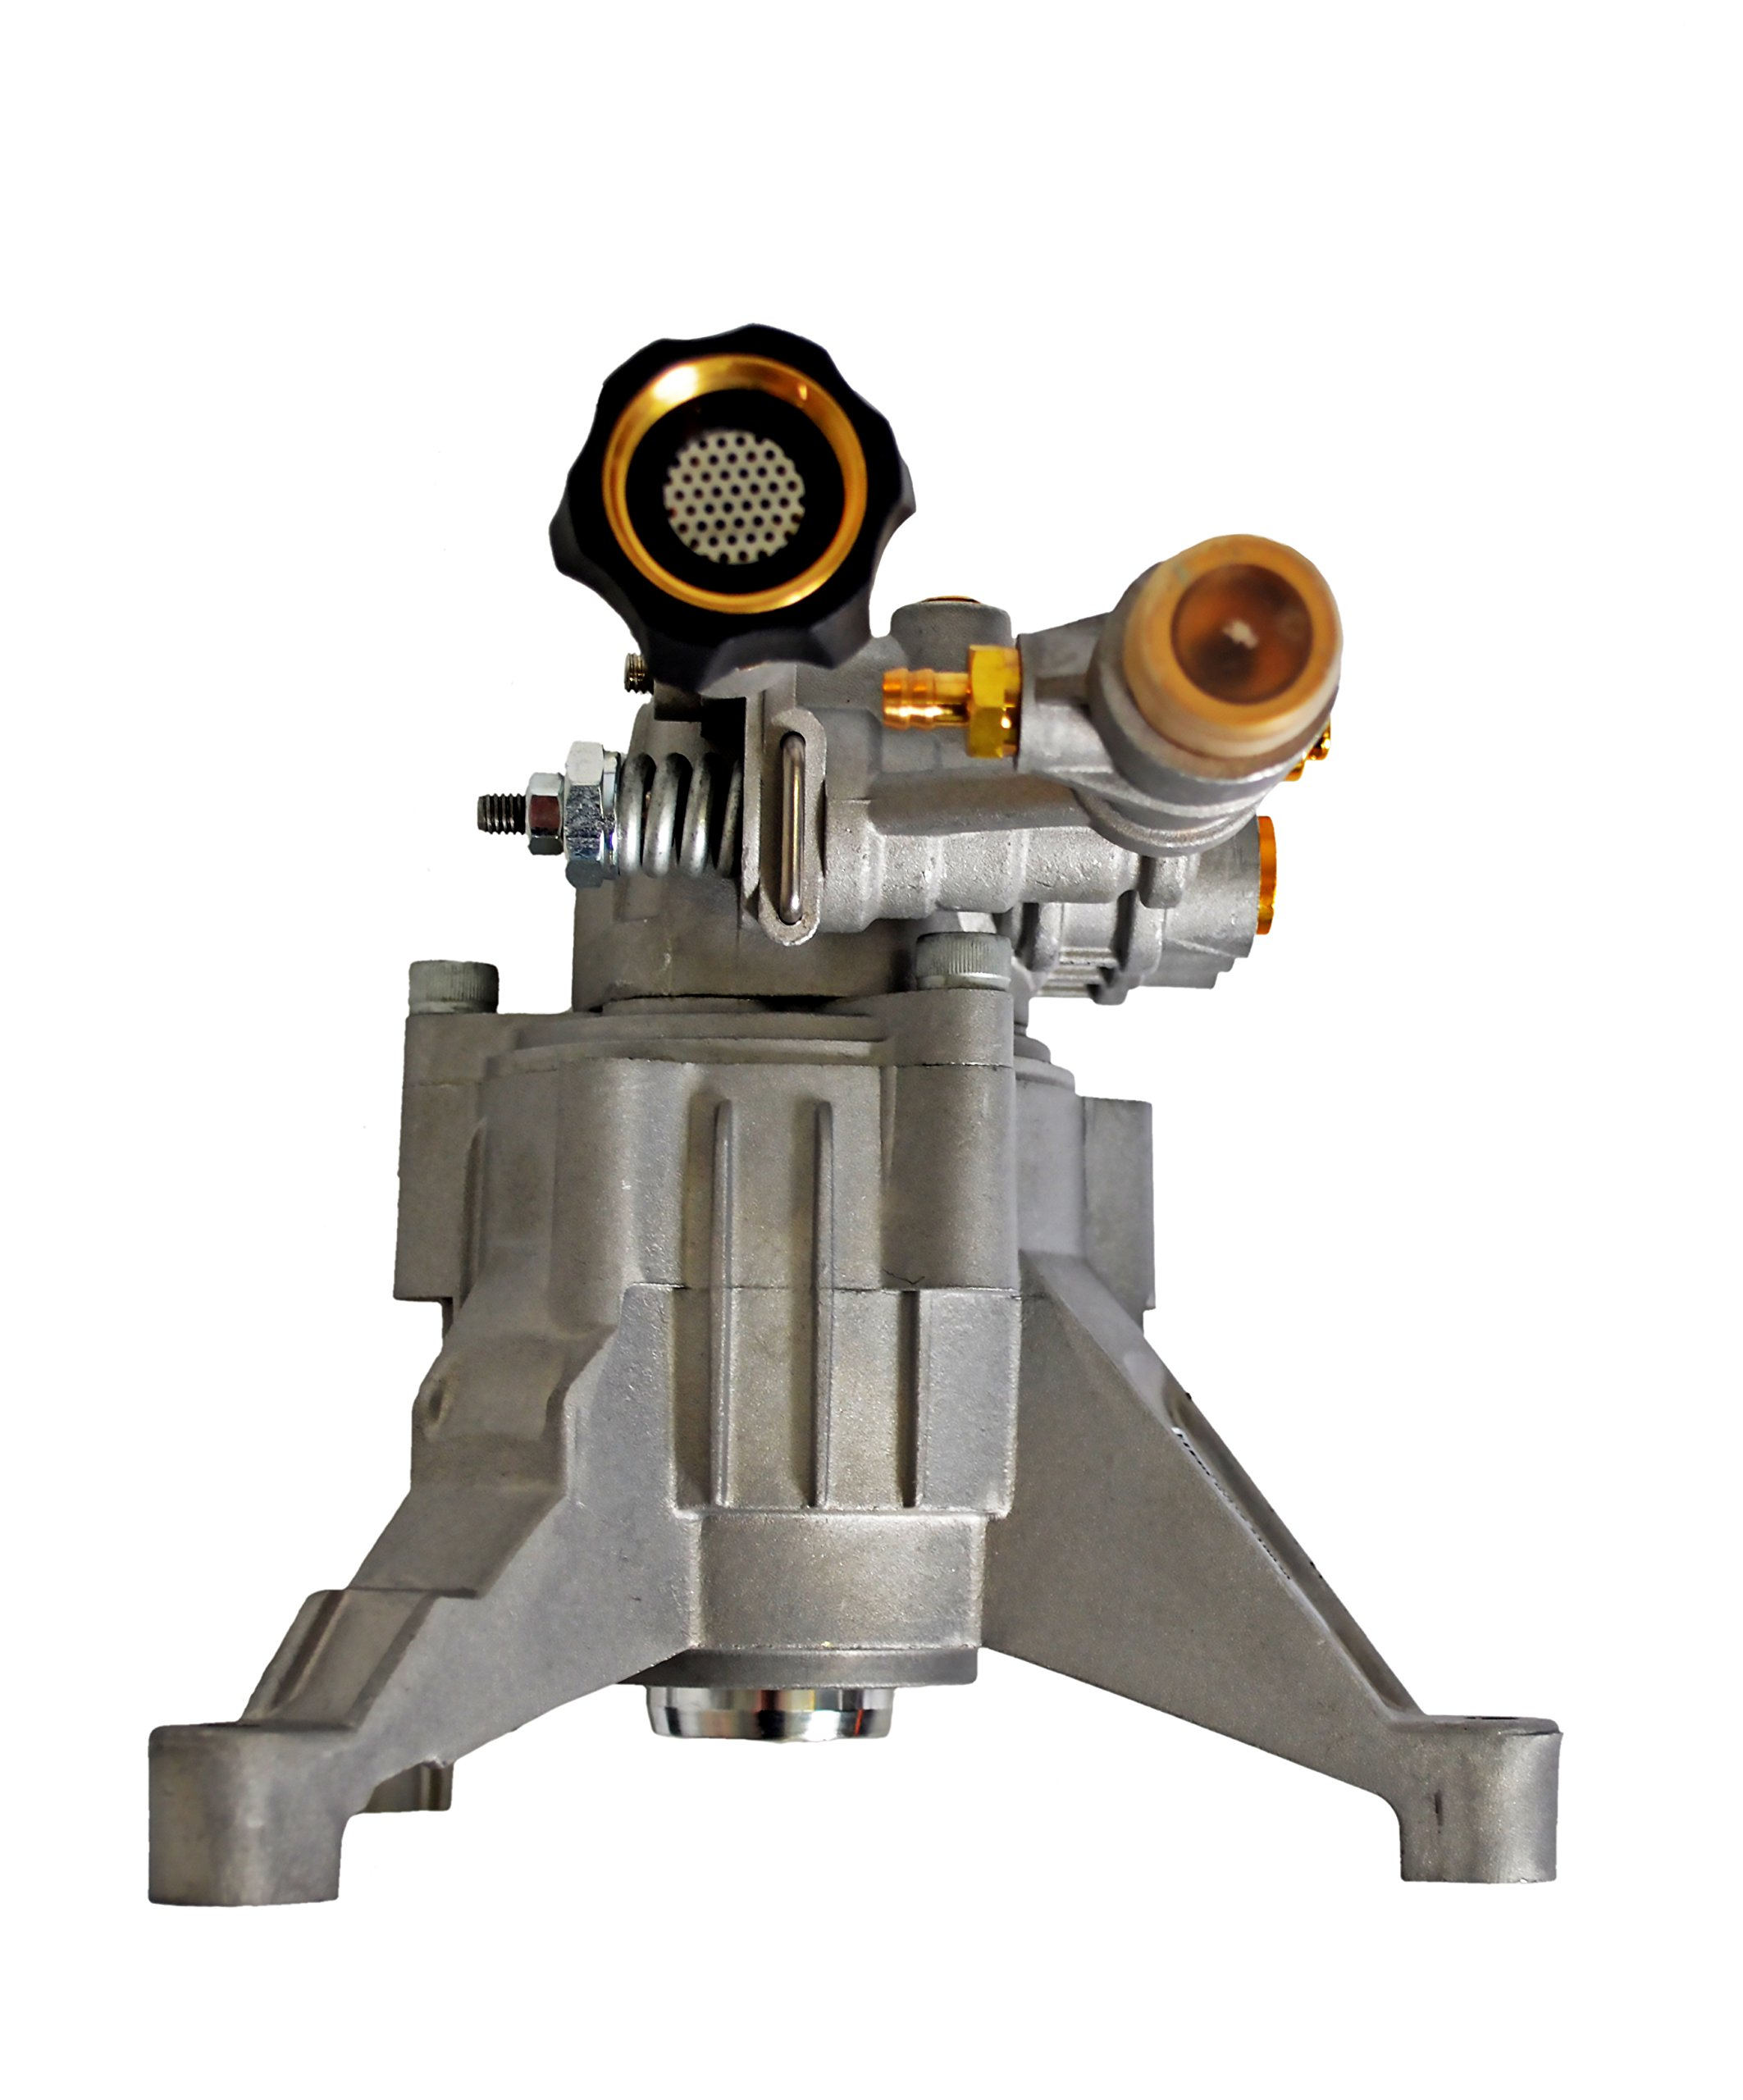 OEM Technologies Vertical Axial Cam Pump Kit 2400 PSI at 2.0 GPM by OEM Technologies